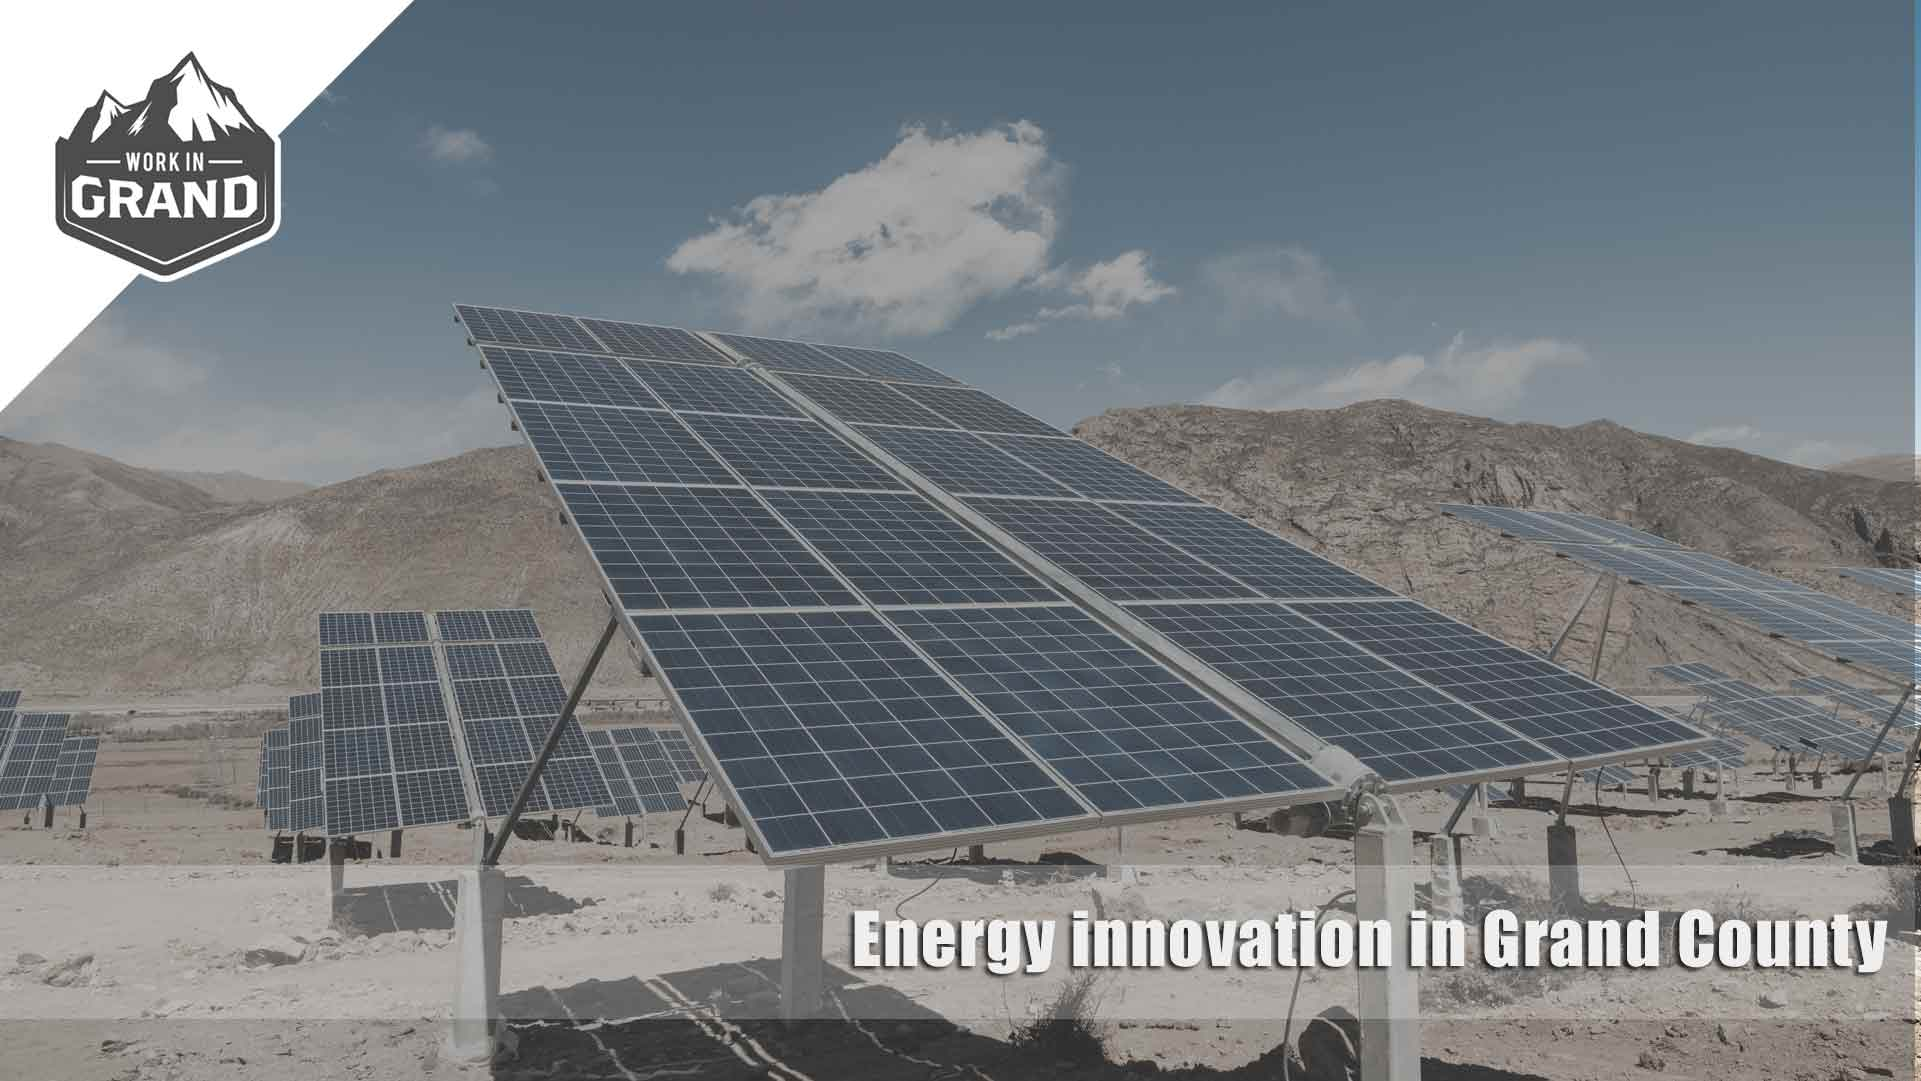 Energy innovation in Grand County